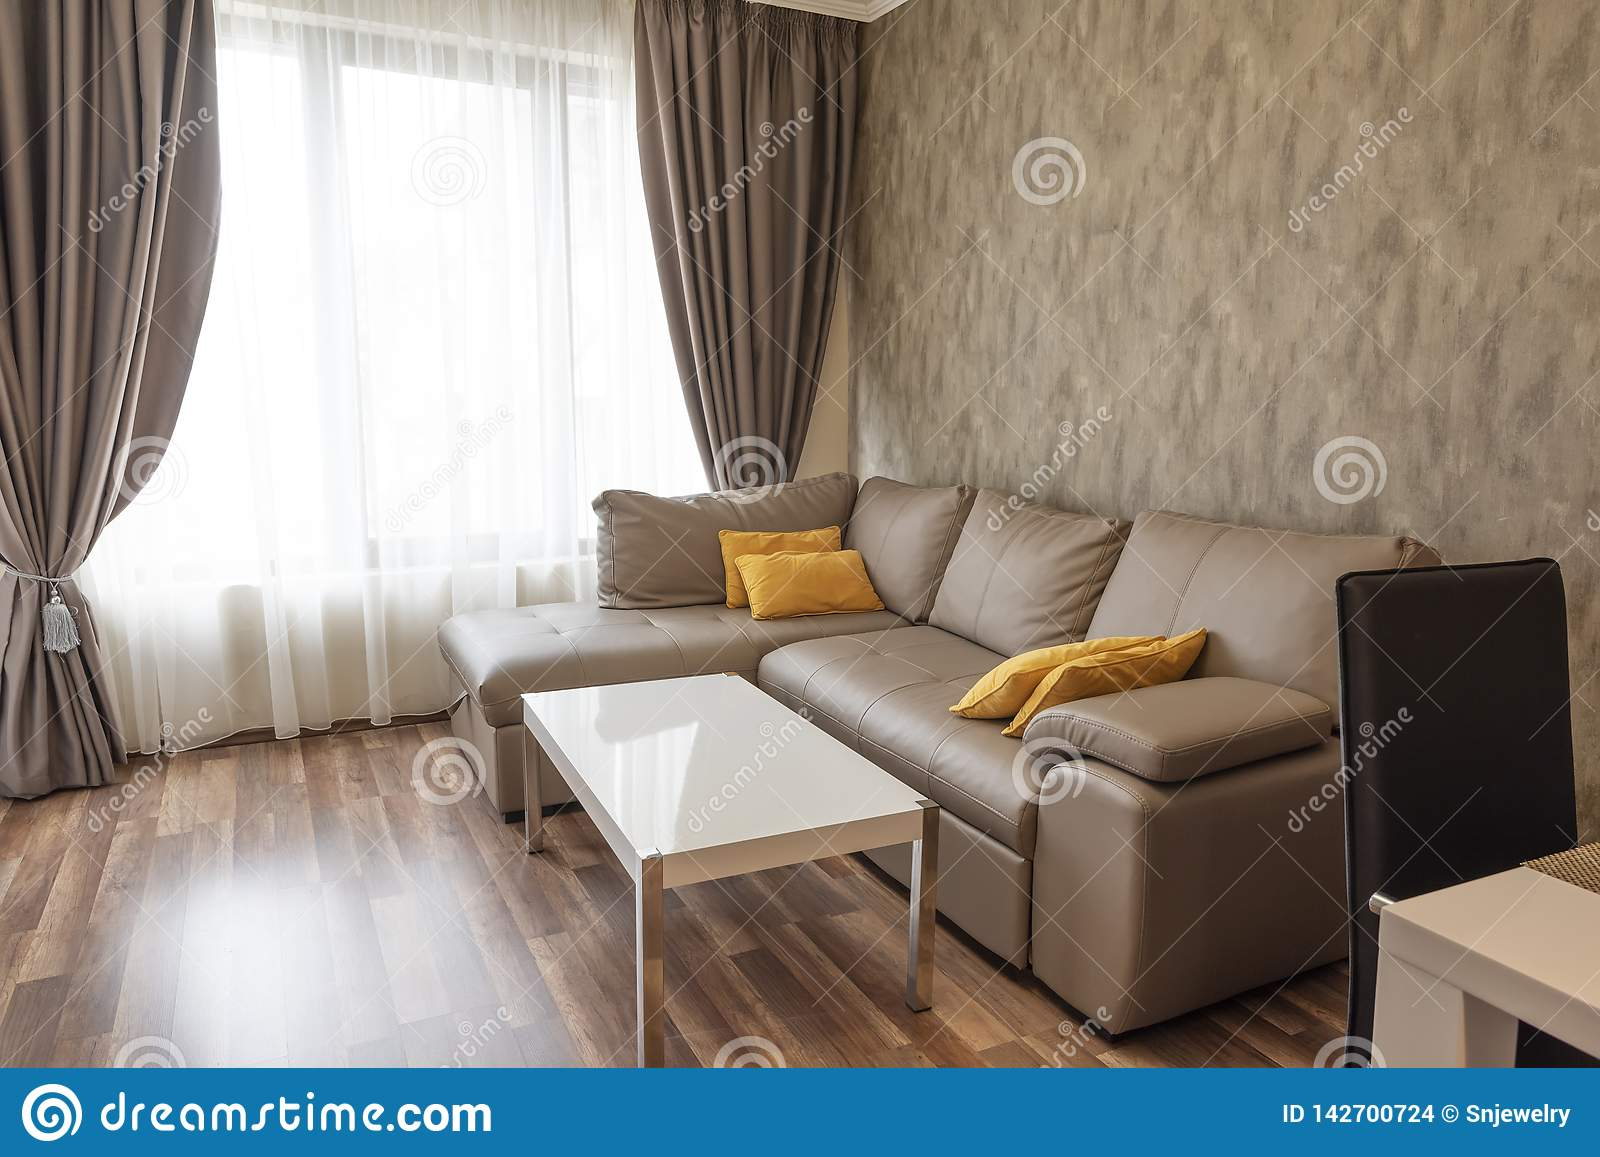 New Modern Living Room New Home Interior Photography Wooden Floor Sofa Near The Windows With Long Curtains Stock Photo Image Of Curtains Beautiful 142700724